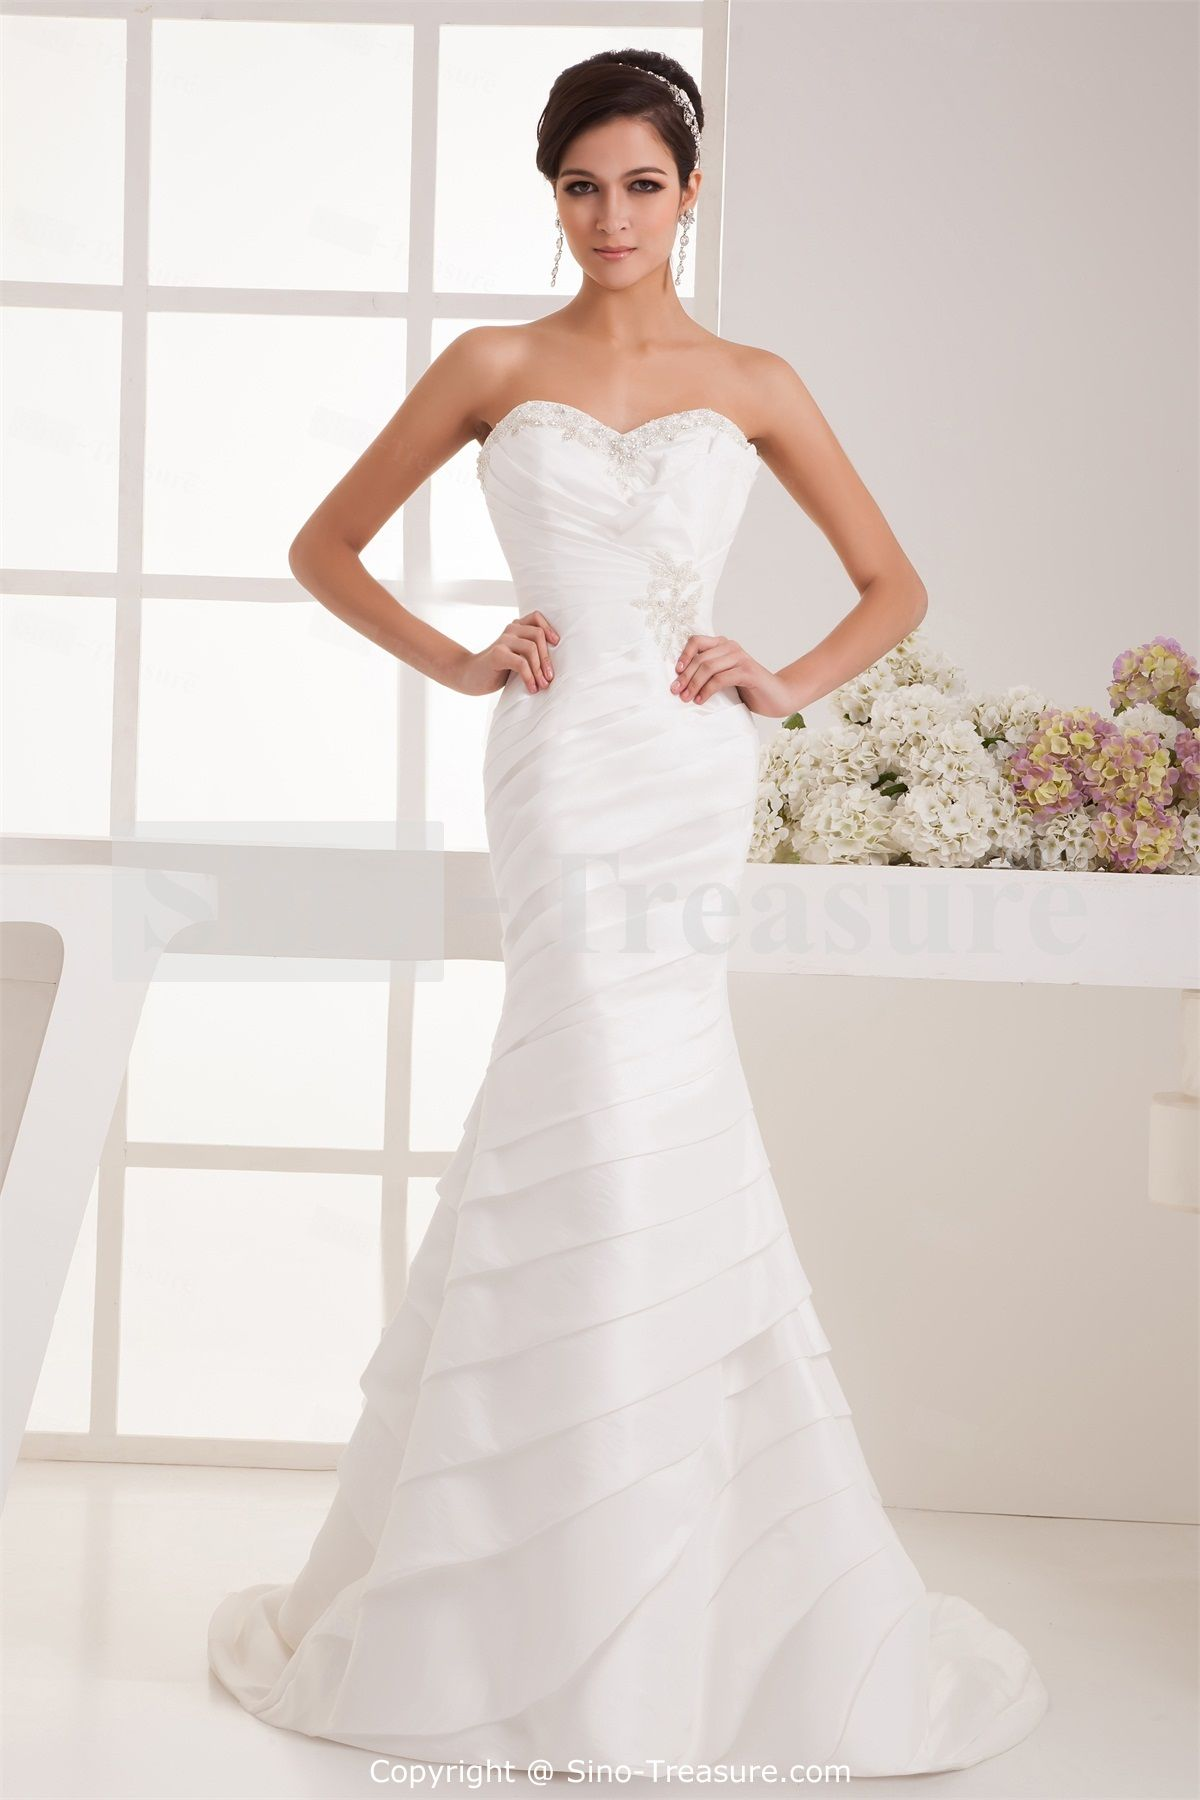 trumpet wedding dresses White Beading Mermaid Trumpet Sweetheart Taffeta Wedding Dress Wedding Events Wedding Dresses